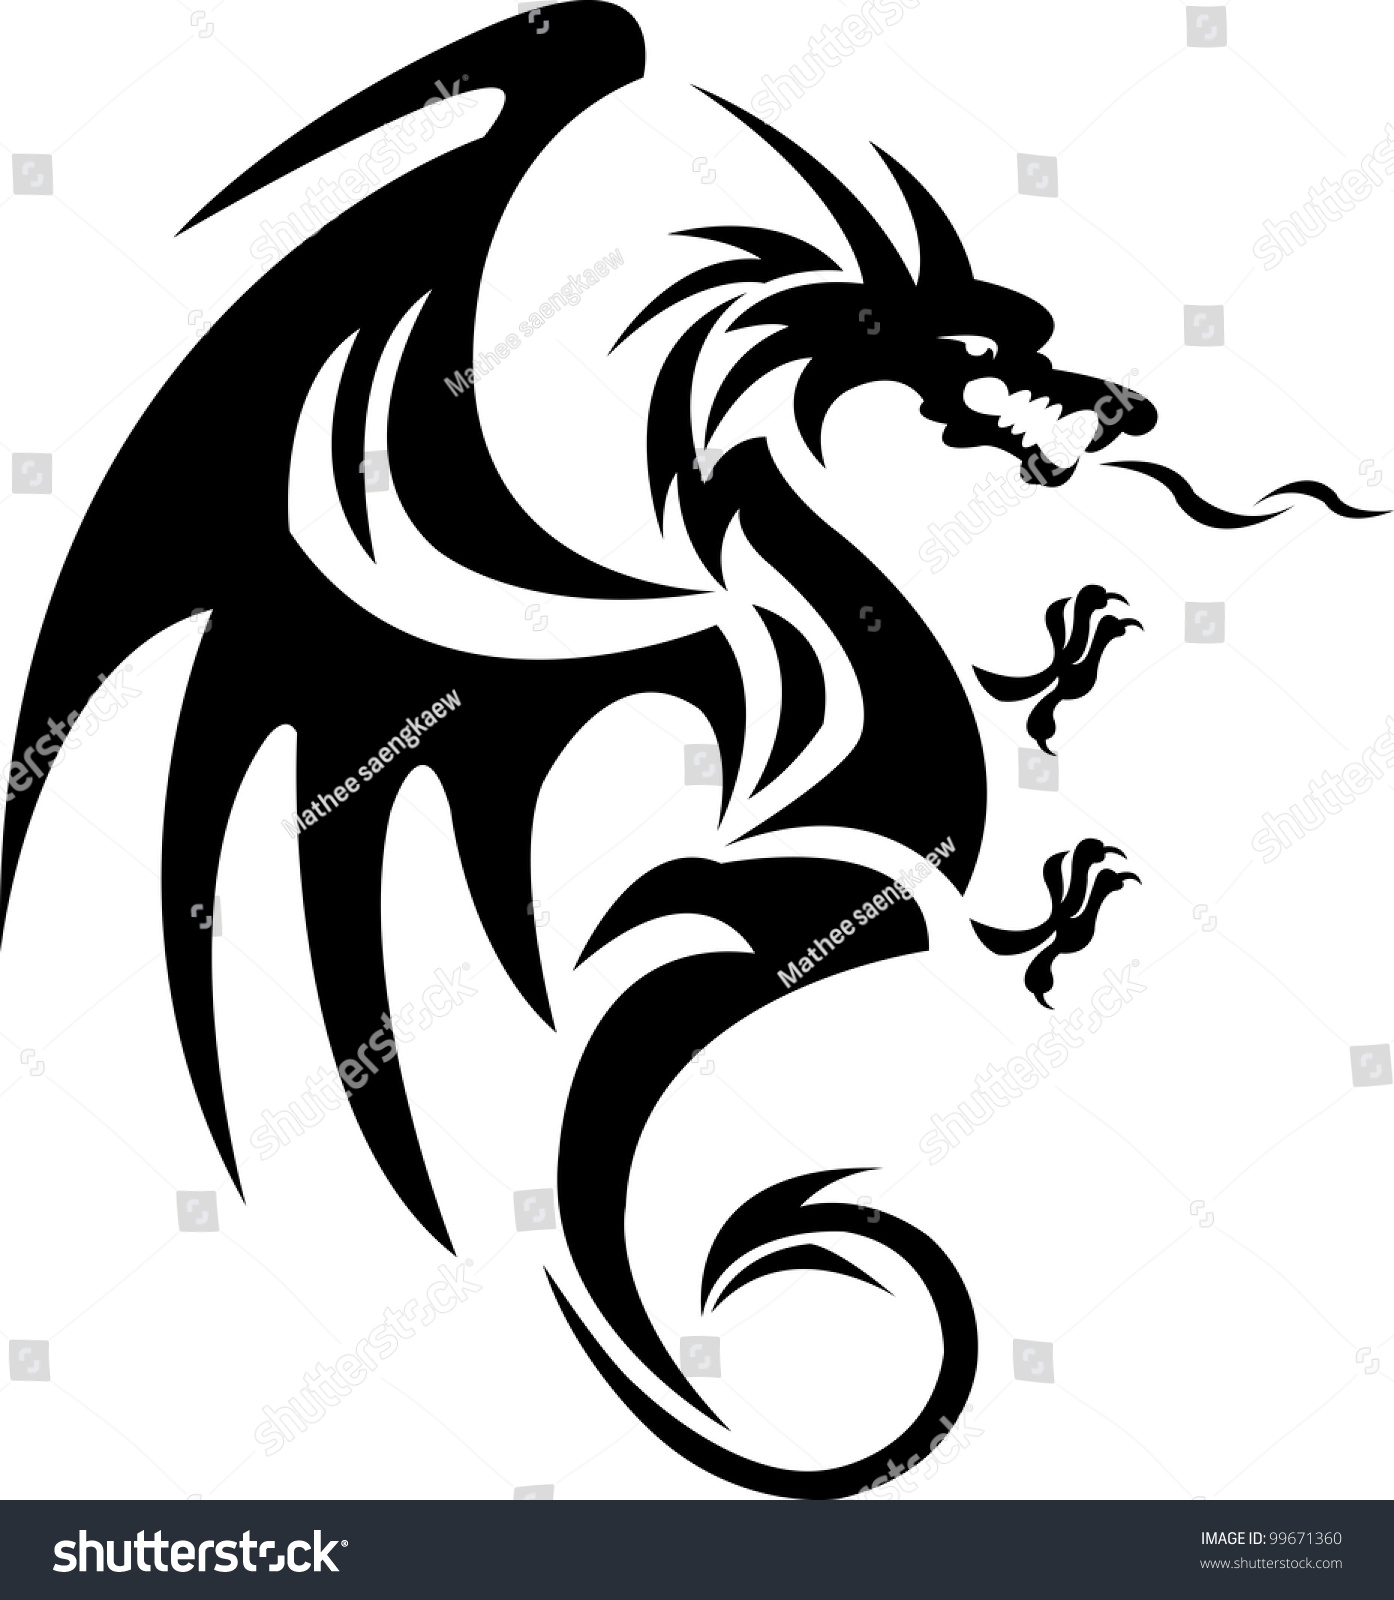 dragon tattoo stock vector 99671360 shutterstock. Black Bedroom Furniture Sets. Home Design Ideas